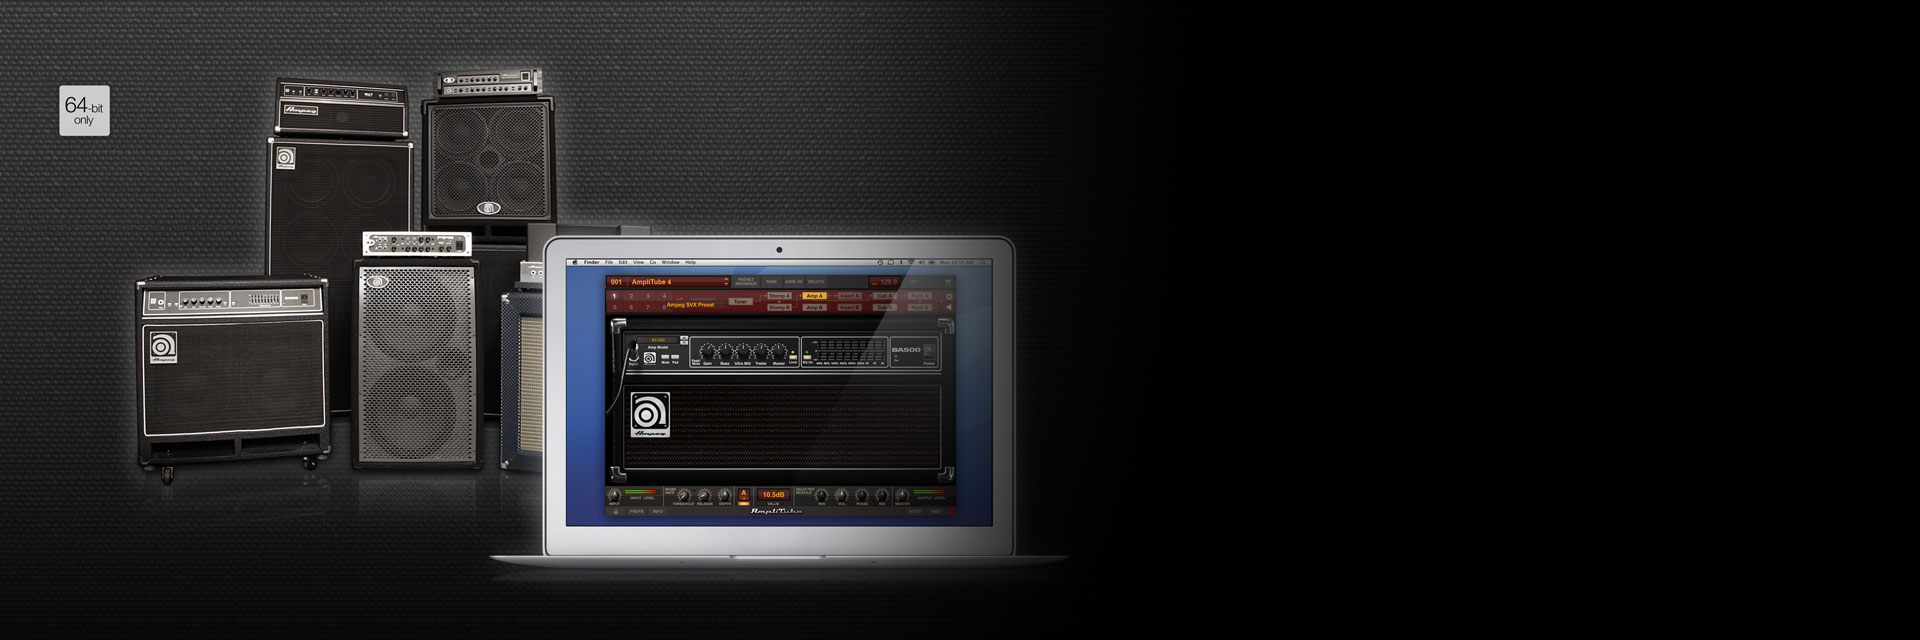 Ik Multimedia Ampeg Svx Thread Electronic Circuit Design And Simulation Software For Mac Legendary Bass Tones In A Plug